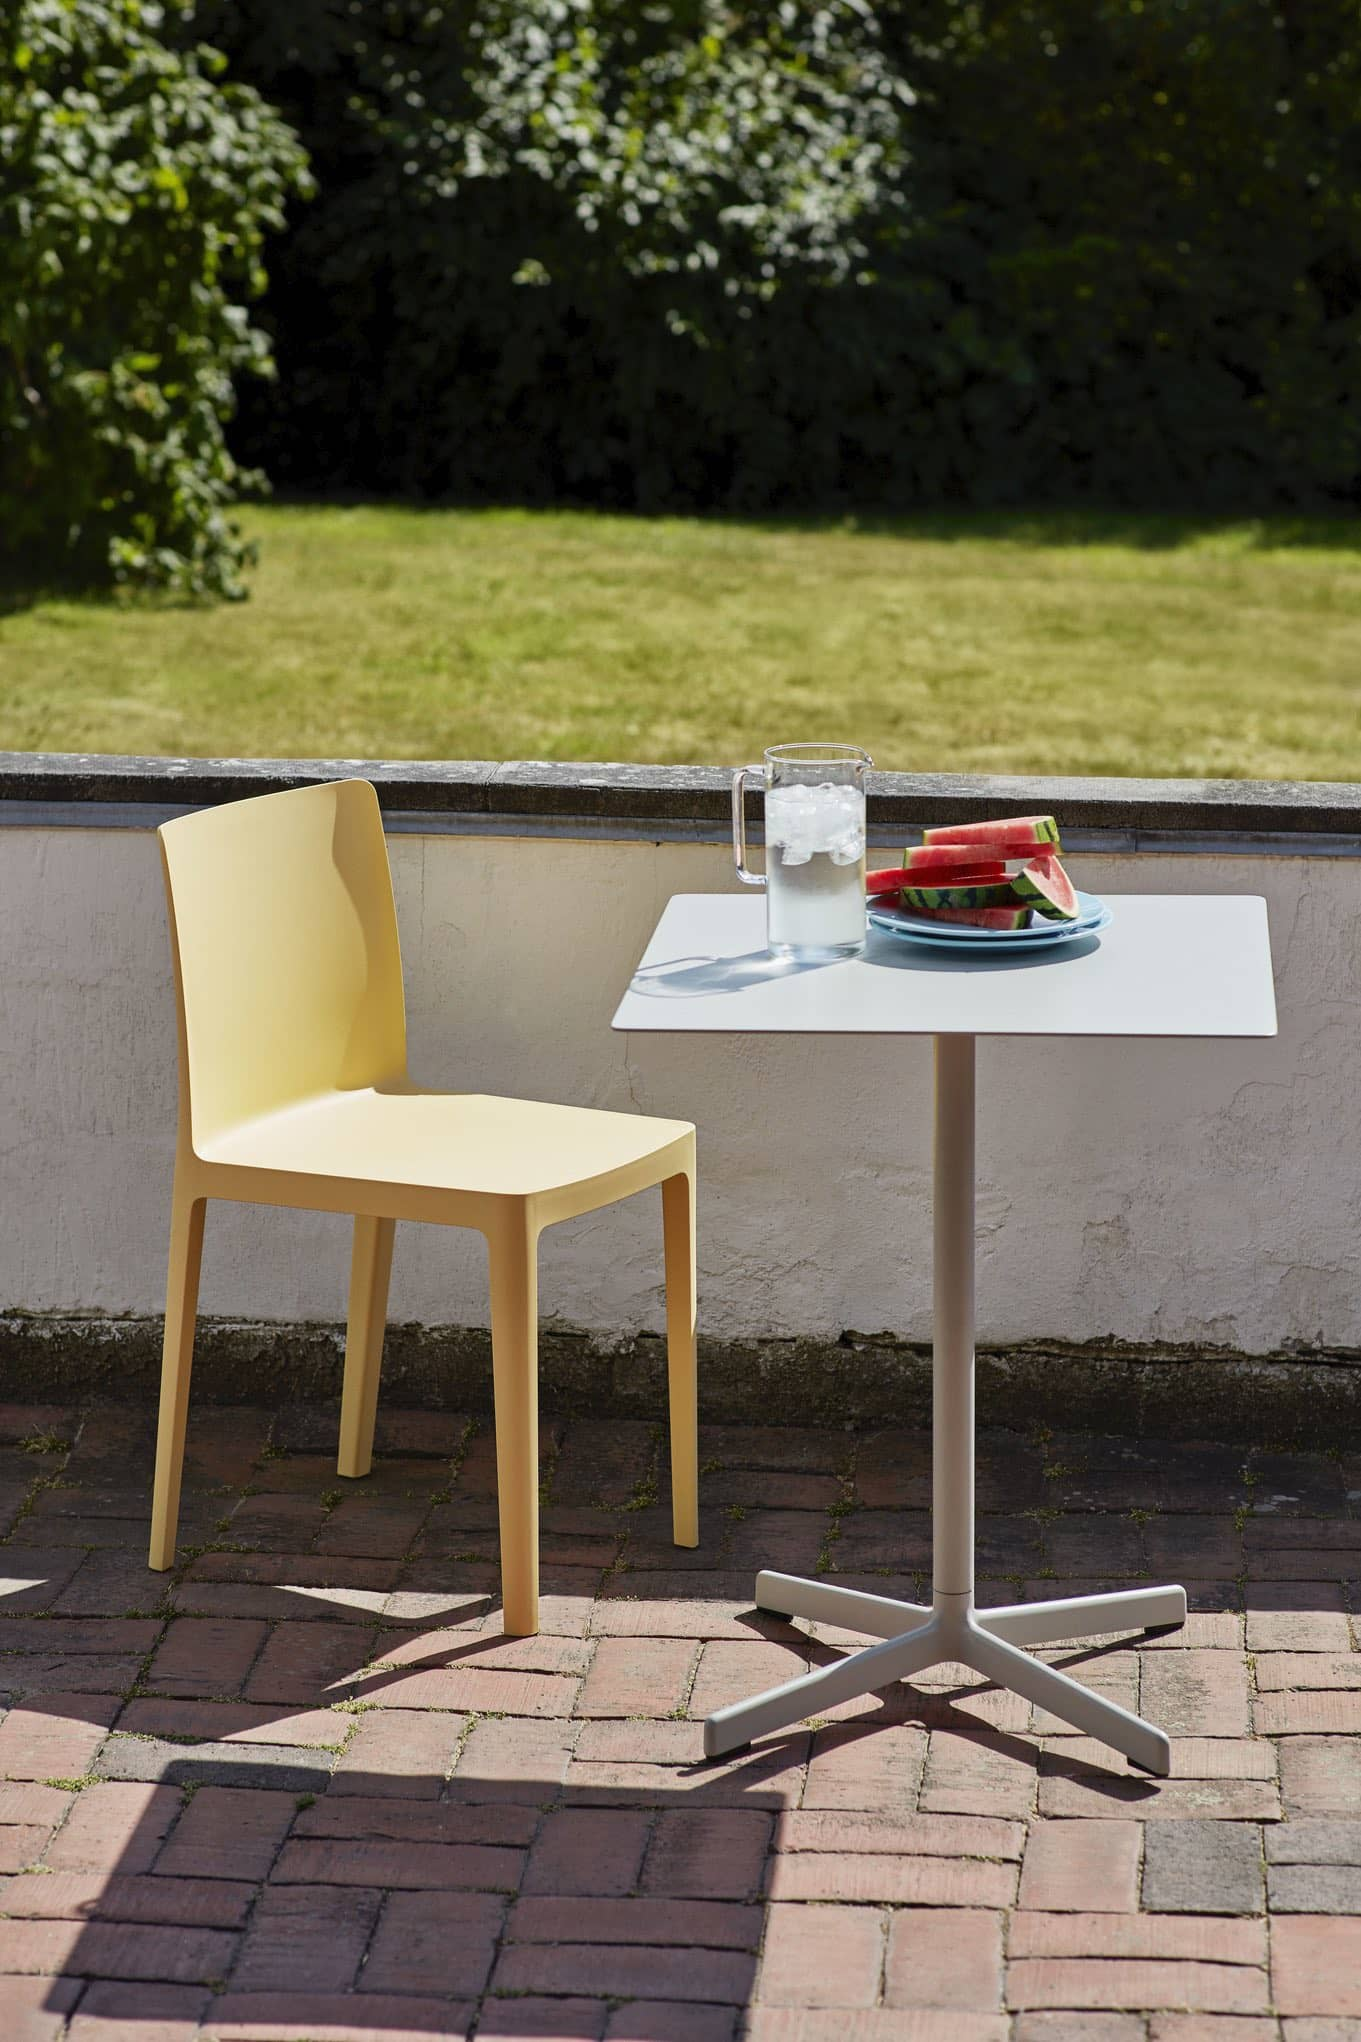 Elementaire-Chair-light-yellow_Neu-Table-Square-sky-grey-2